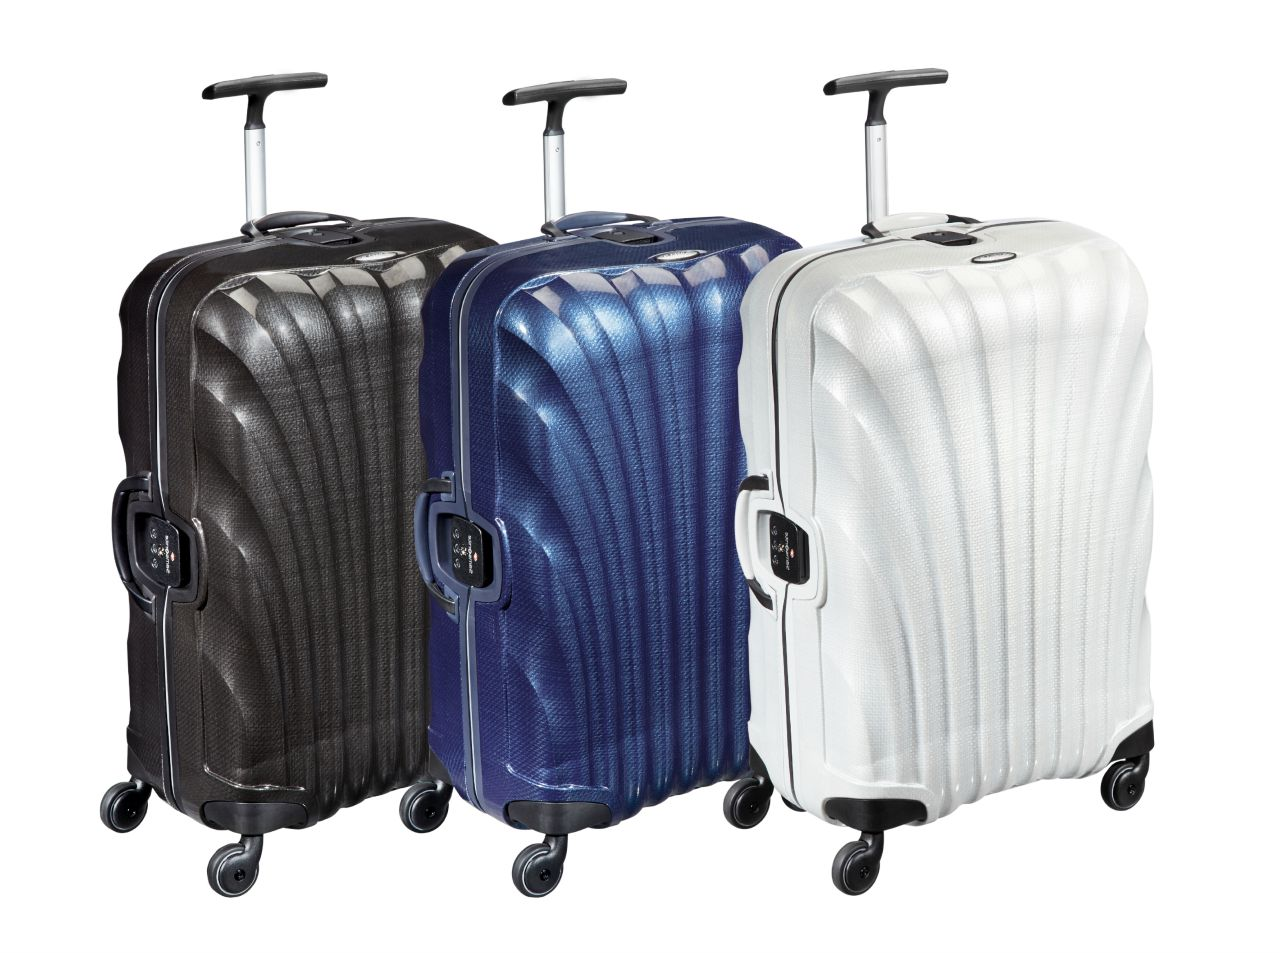 valises avion legeres